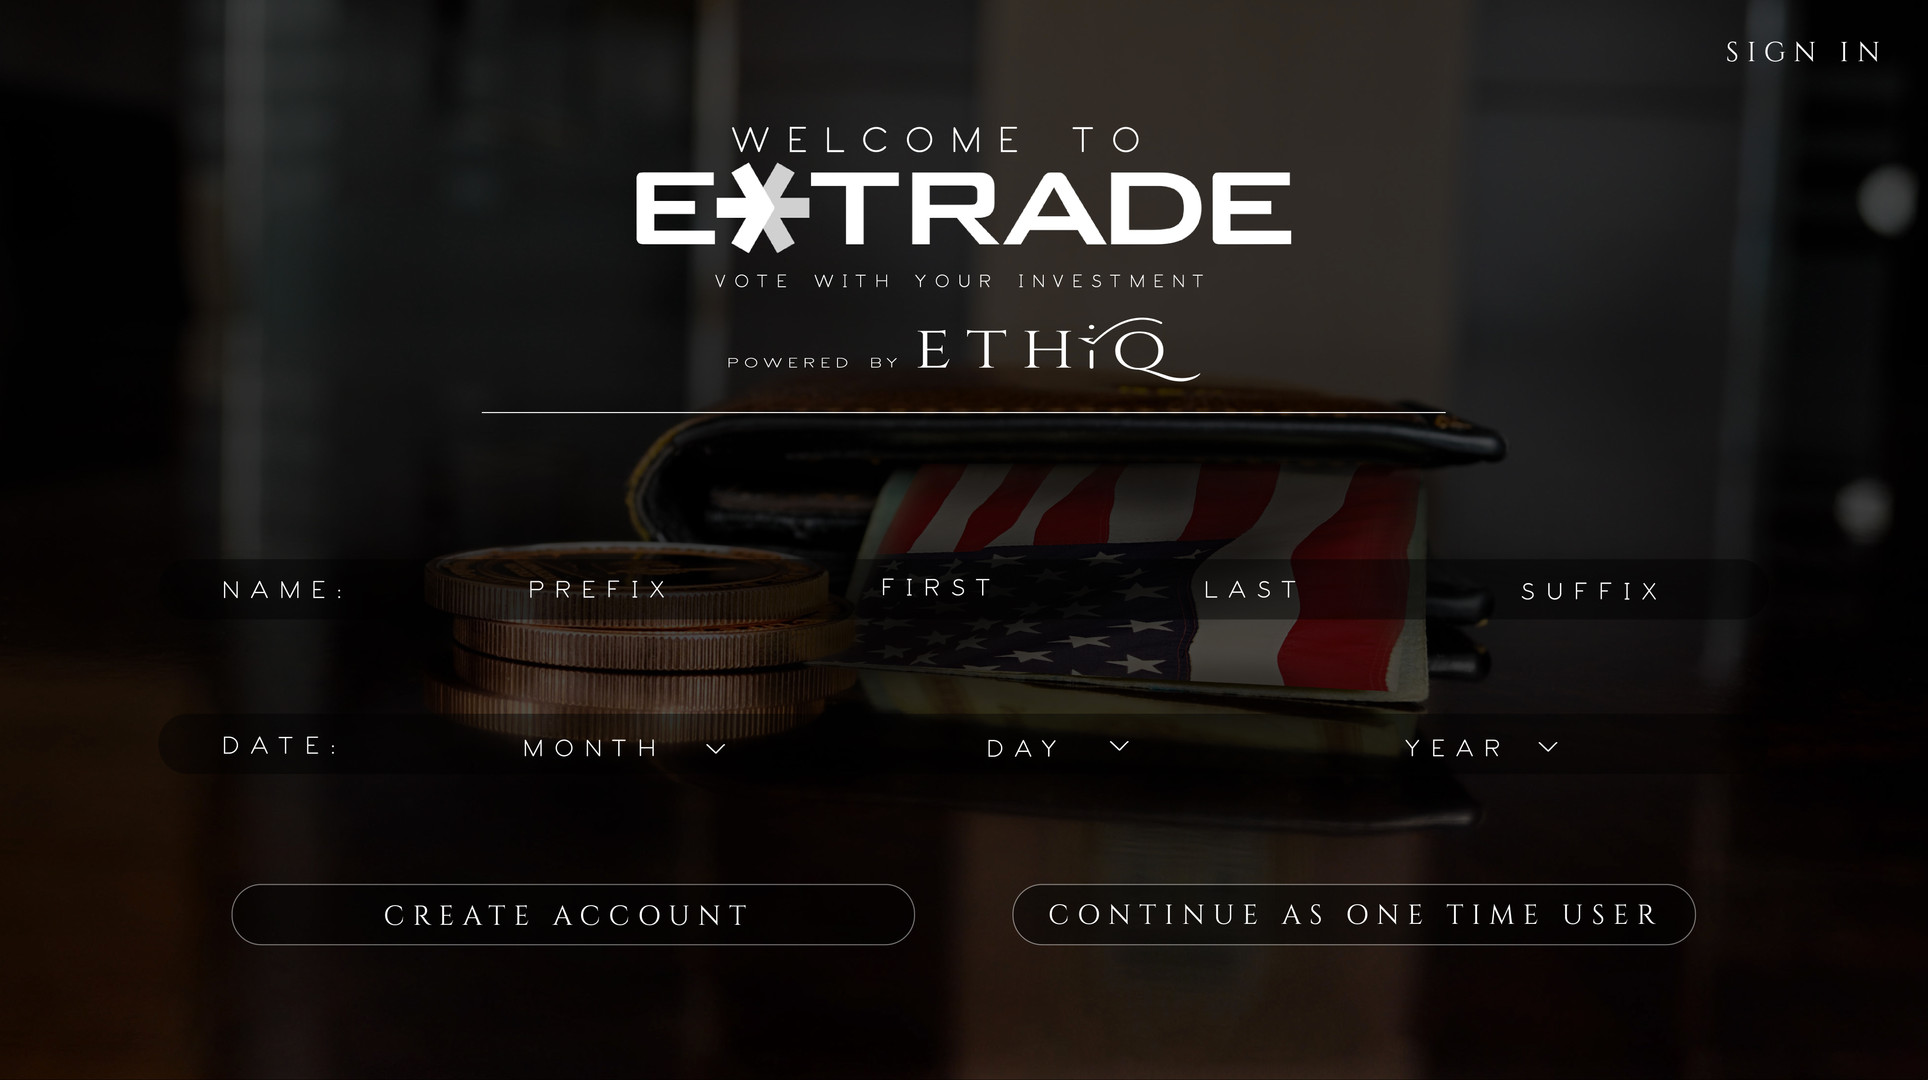 Ethiq_WELCOME-SIGN IN.jpg